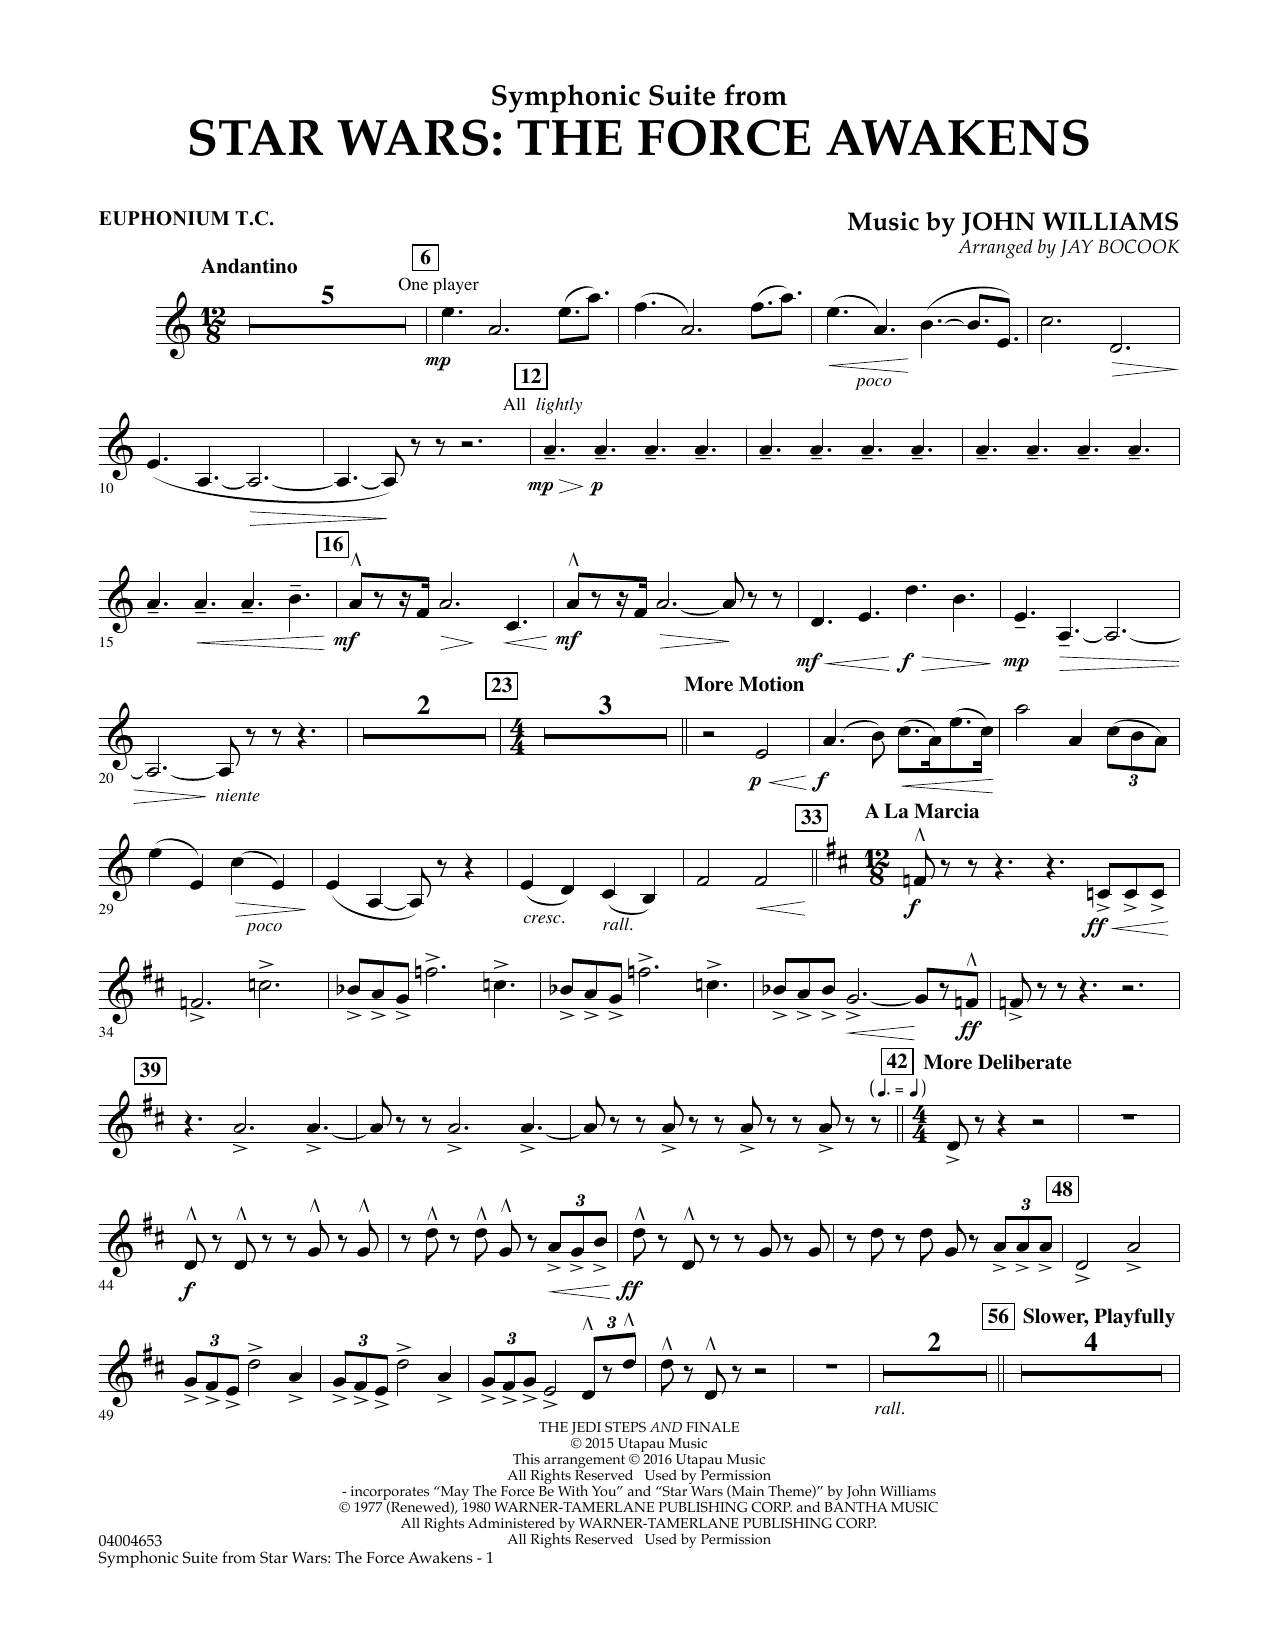 Symphonic Suite from Star Wars: The Force Awakens - Euphonium T.C. (Concert Band)